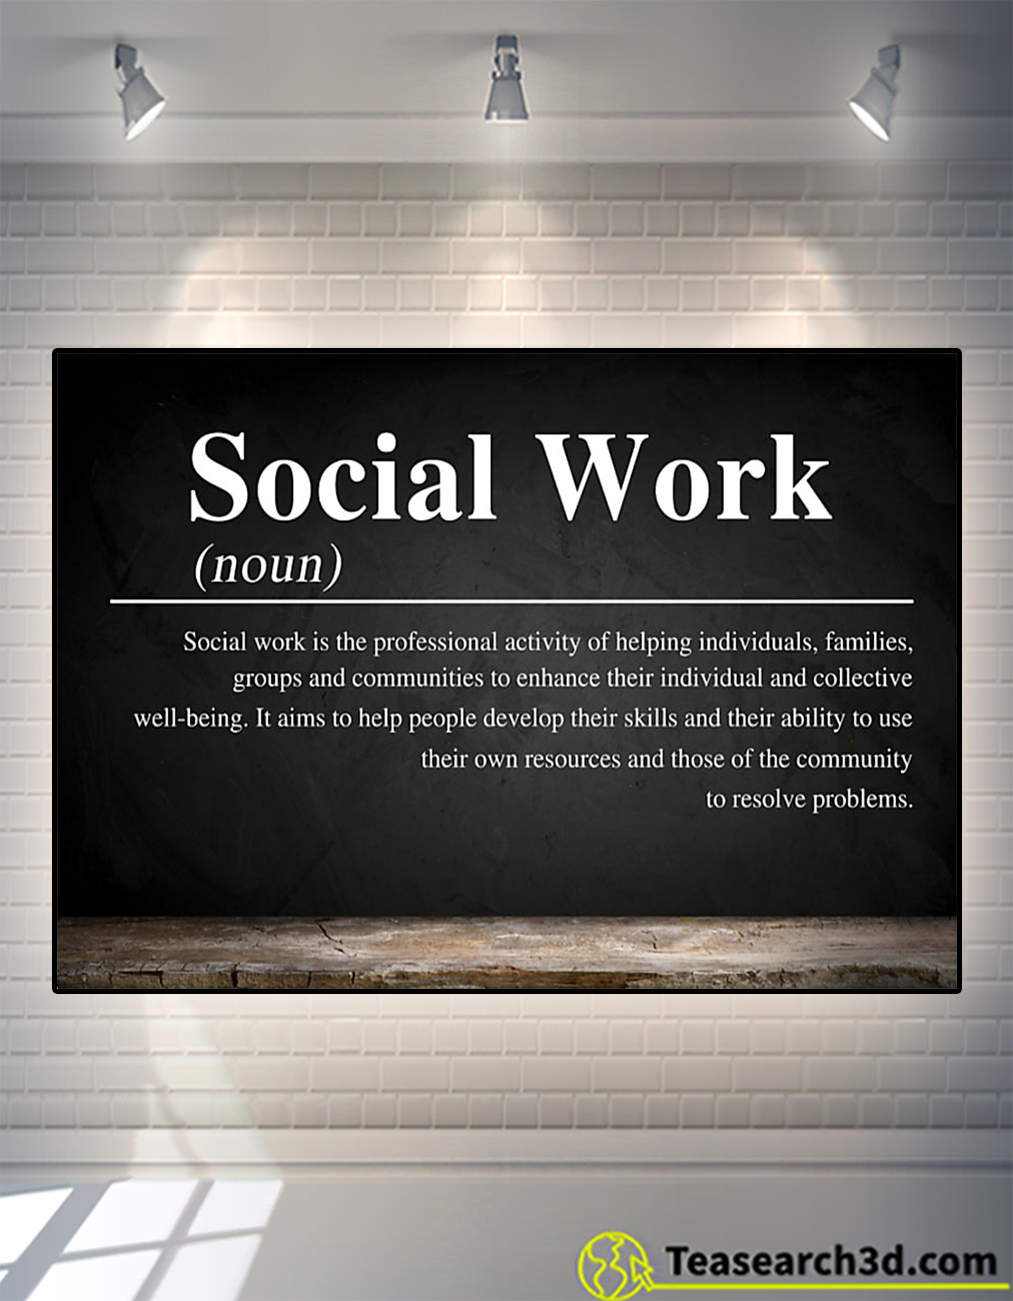 Social work definition poster